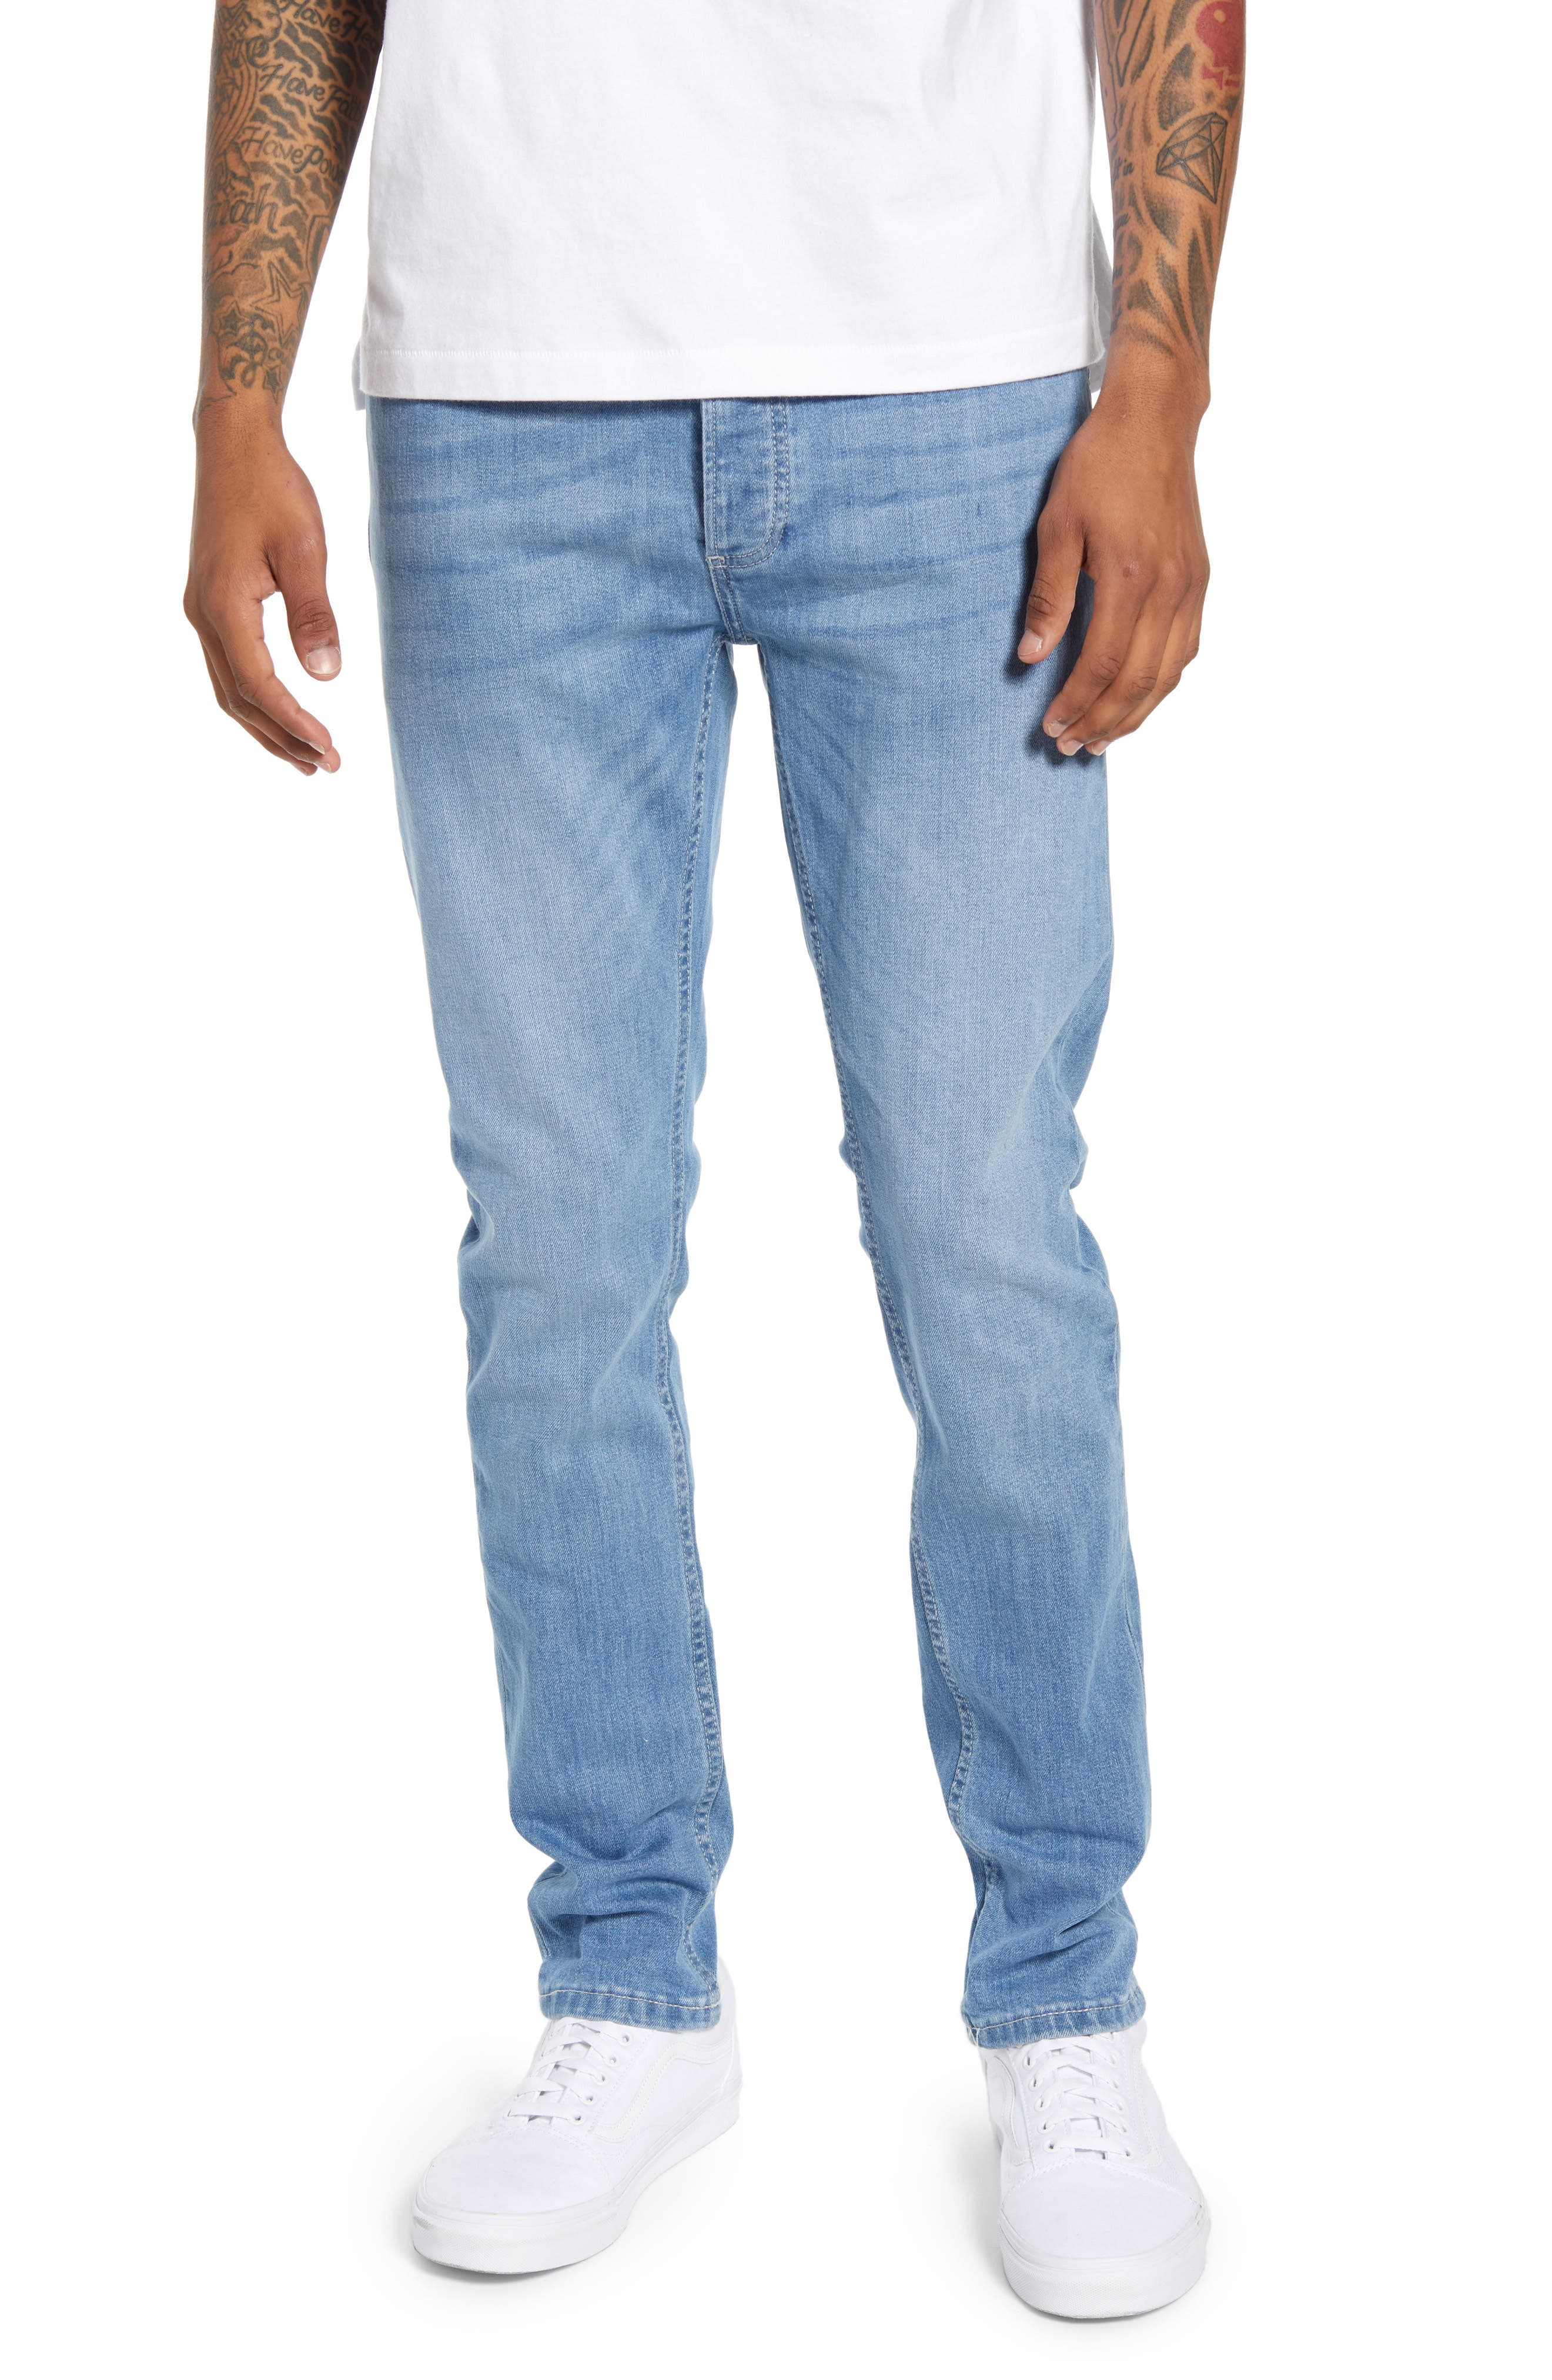 Whitewash sanding and whiskering burnish the well-faded blue wash of jeans cut in a modern skinny fit from soft stretch-cotton denim. Style Name: Topman Mason Skinny Fit Jeans. Style Number: 6039621. Available in stores.